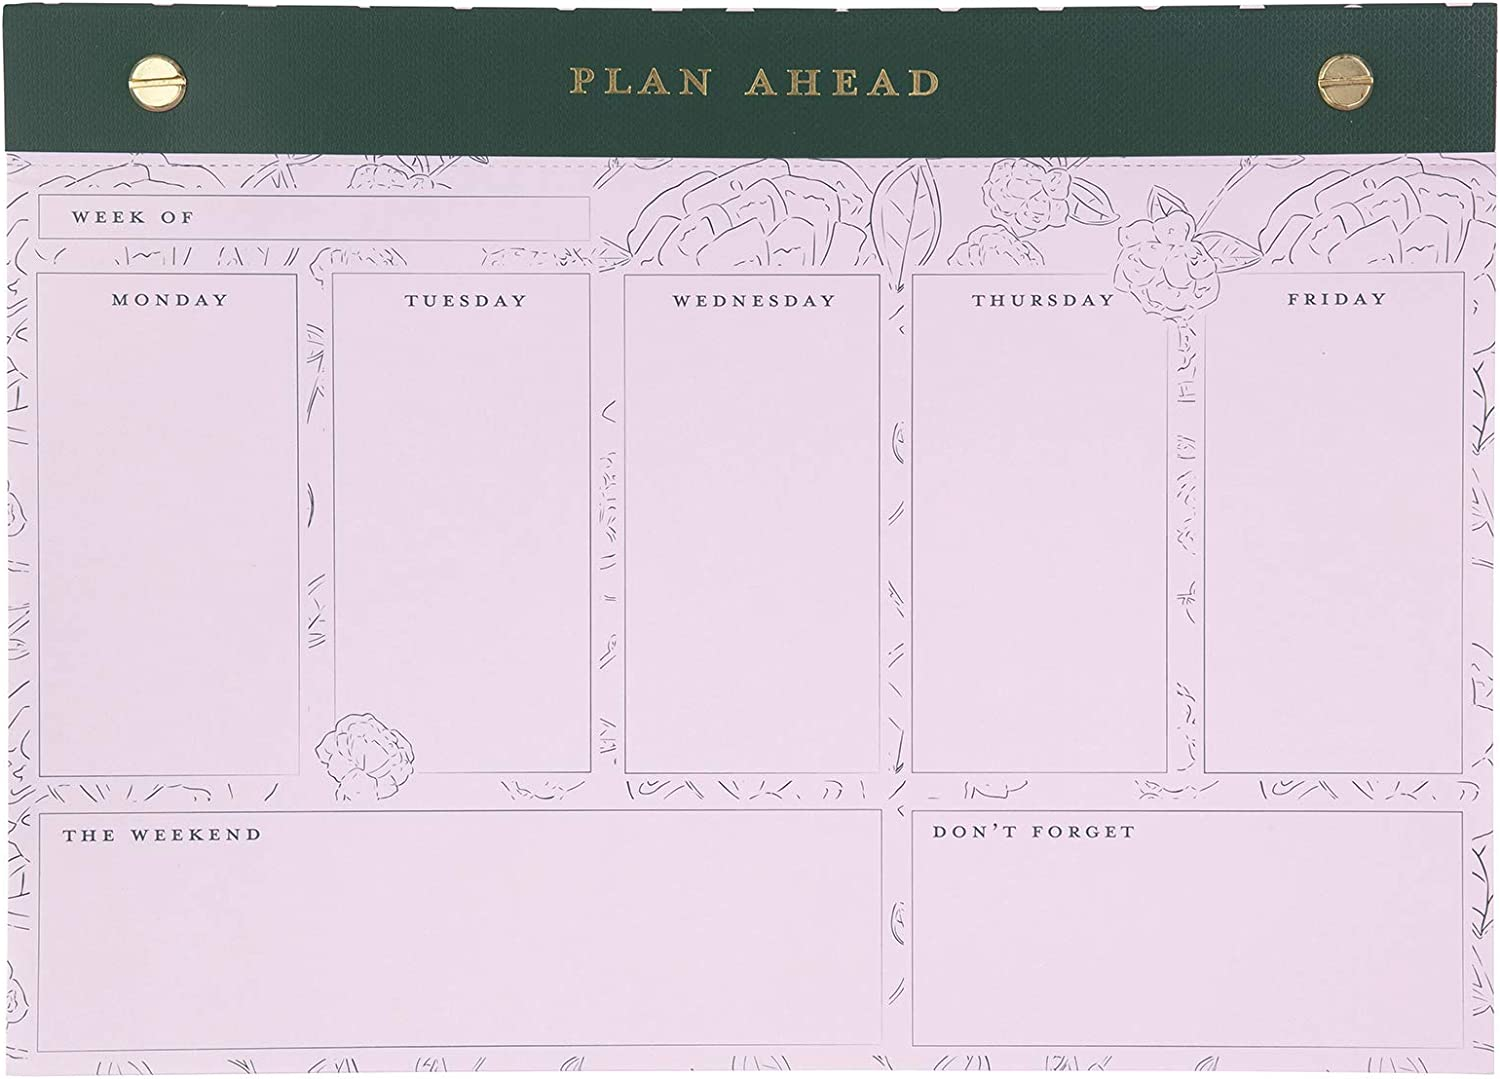 Cute Women's Desktop Weekly Planner Notepad, Undated Personal Organizer for Daily to Do Lists/Schedules, 52 Non-Dated Tear-Off Sheets for a Complete Year of Planning, Plan Ahead (Dot Stripes)